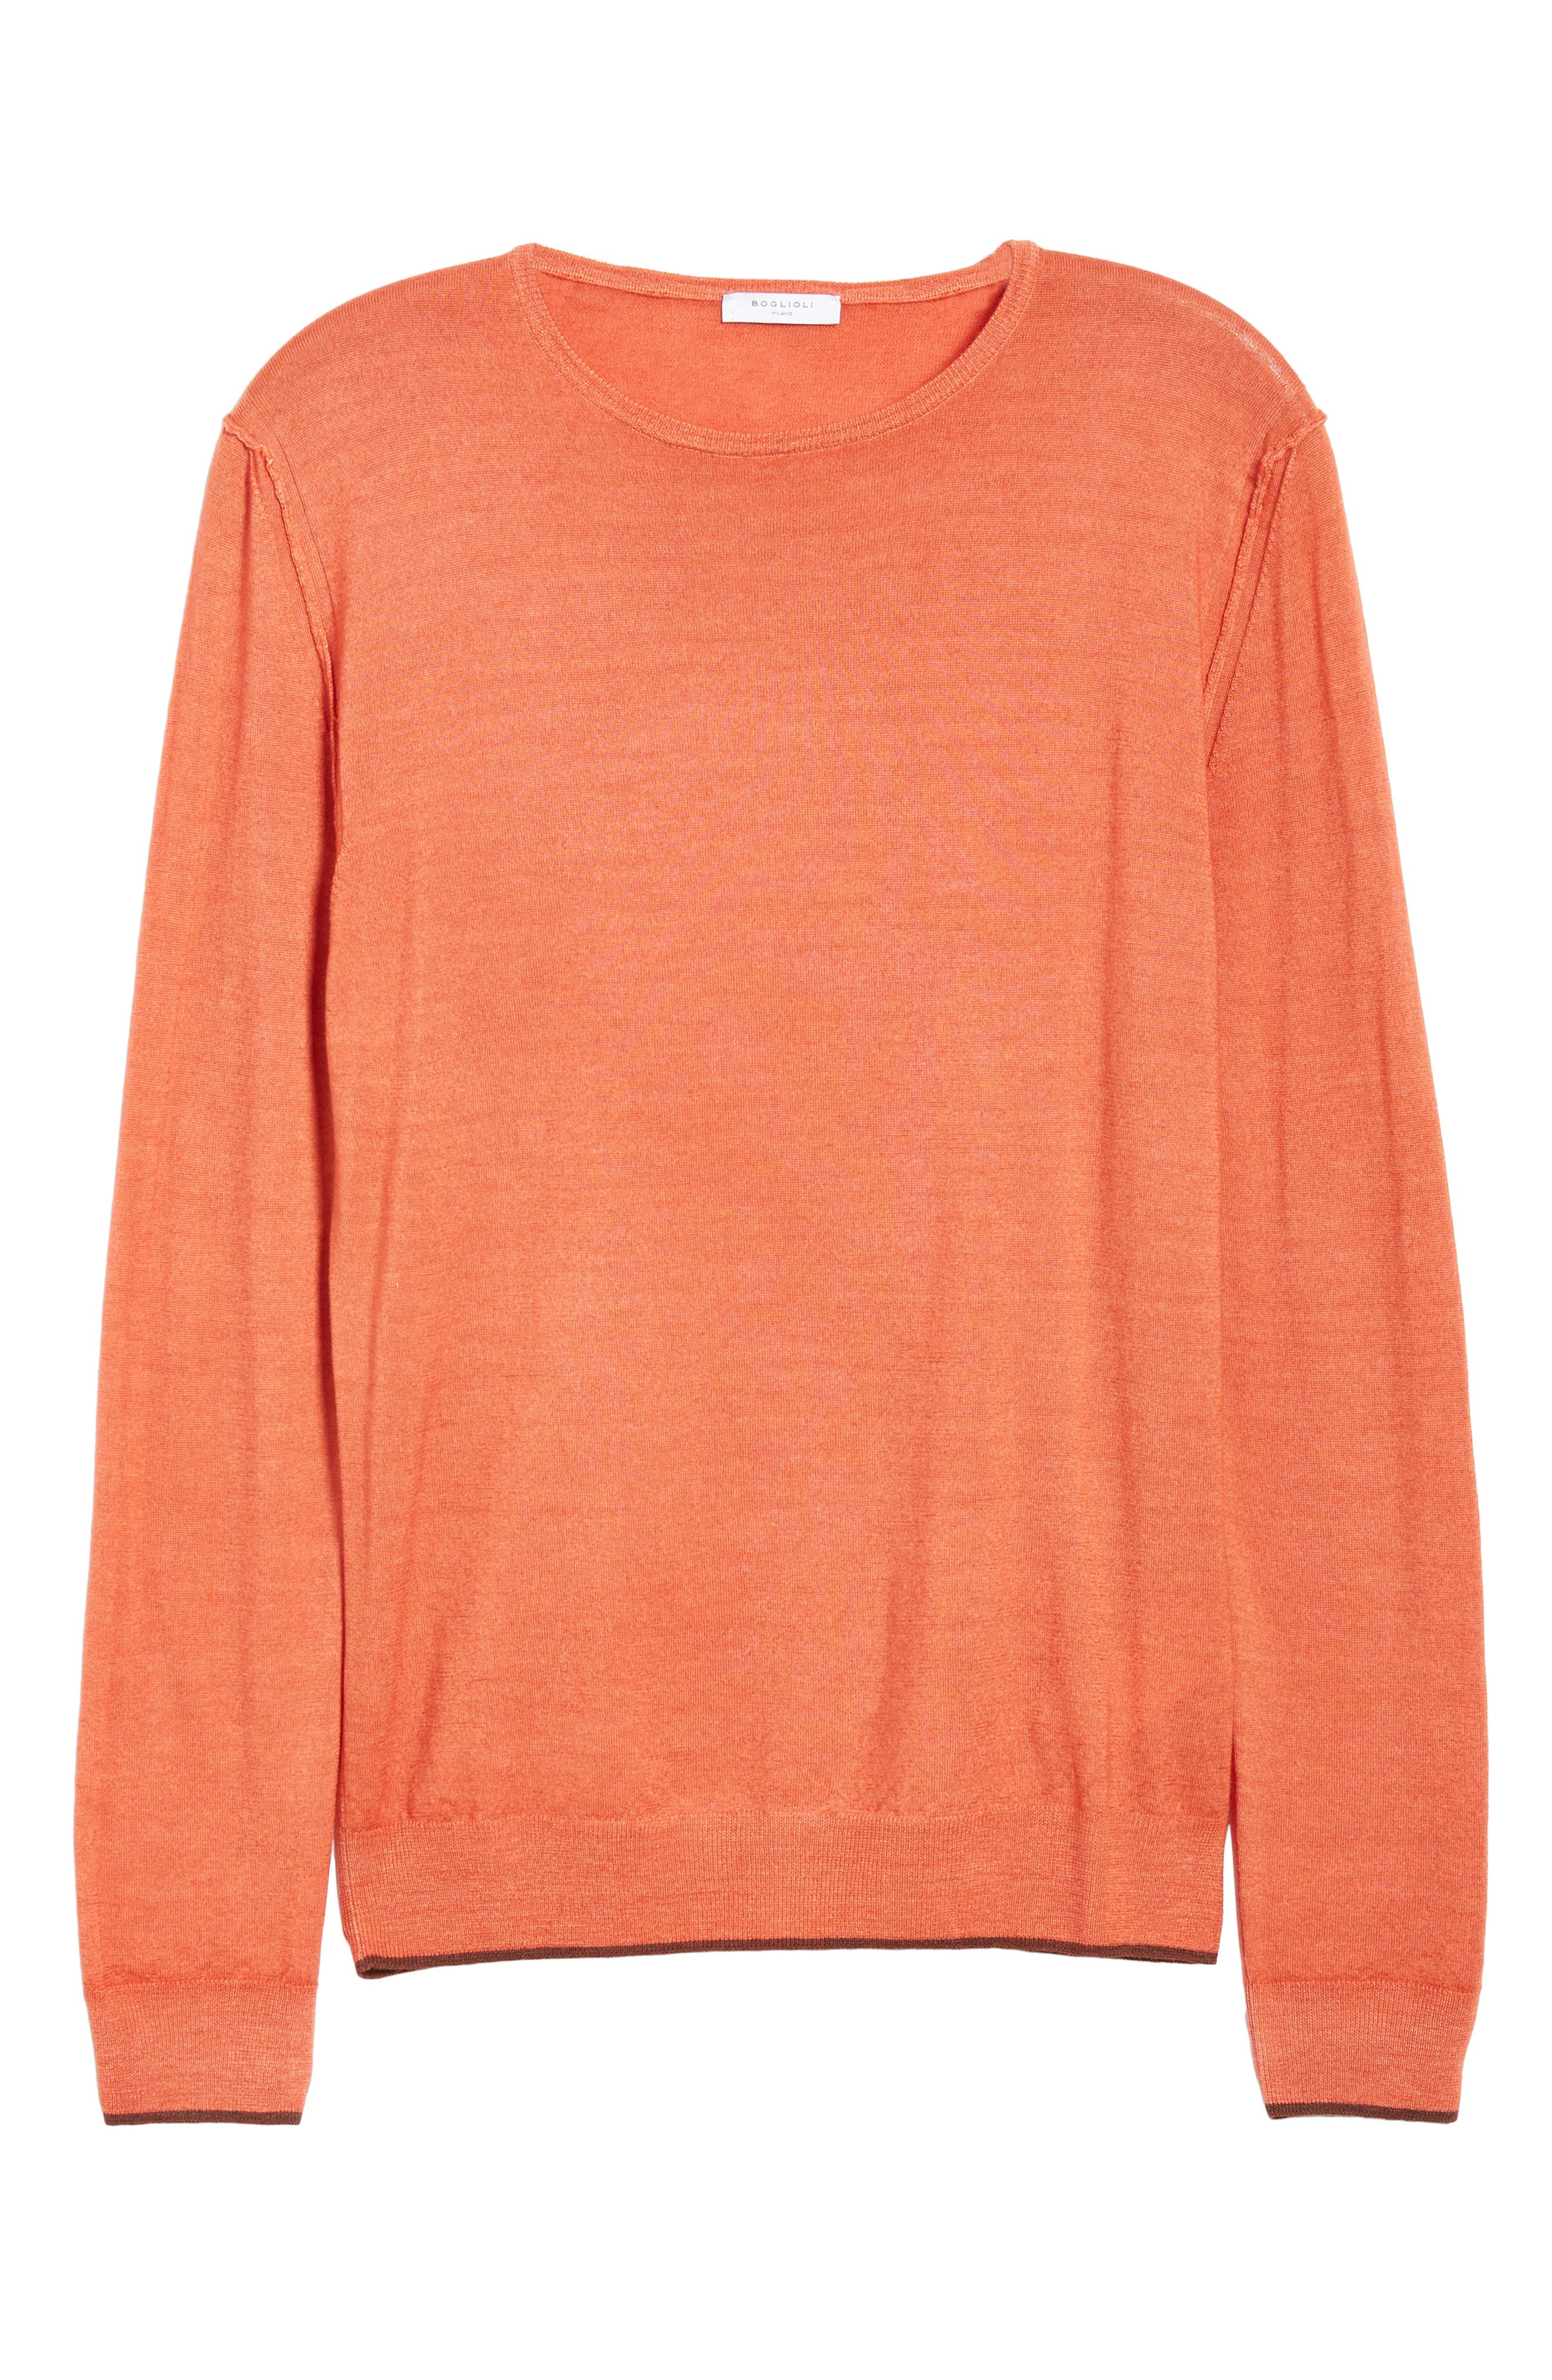 Trim Fit Crewneck Wool Sweater,                             Alternate thumbnail 6, color,                             ORANGE